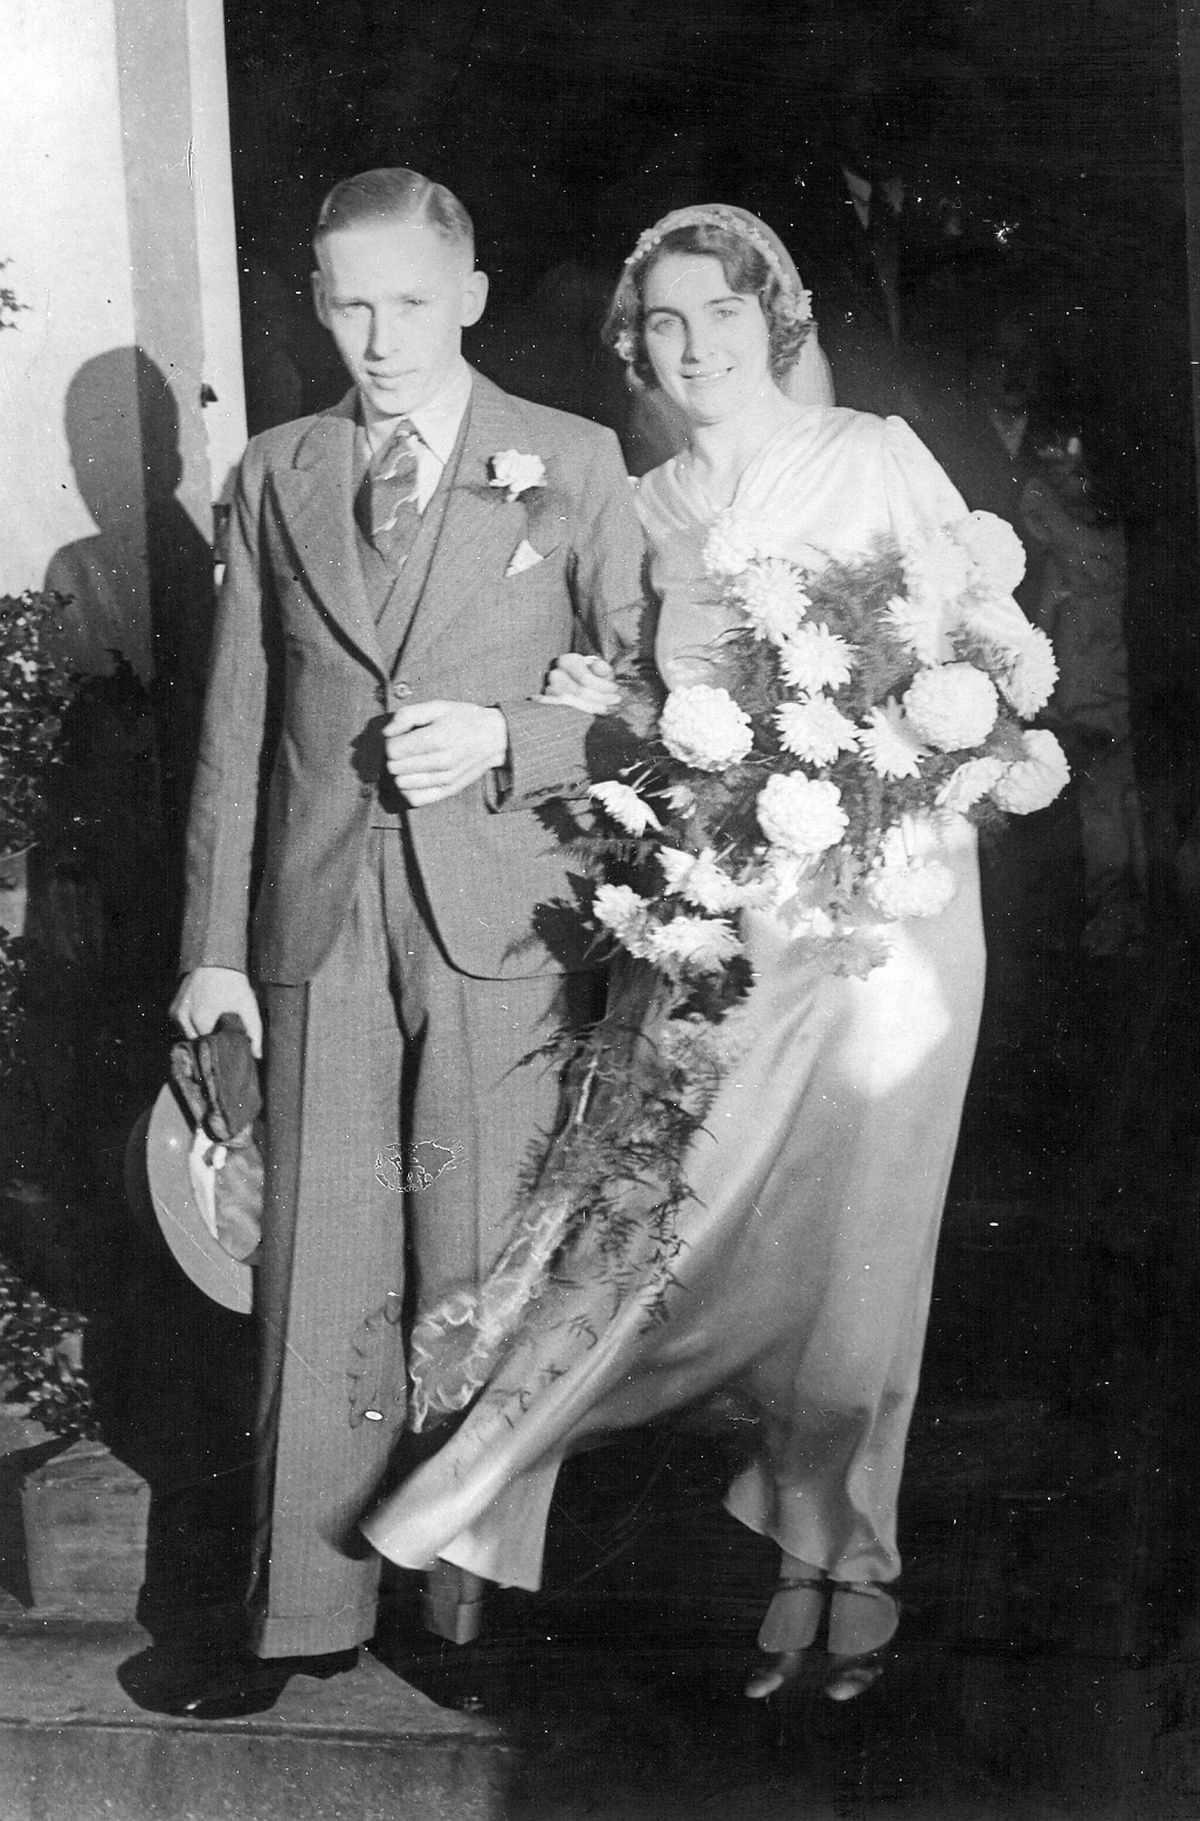 Marriage to Stan at Stambermill Church on November 14, 1936